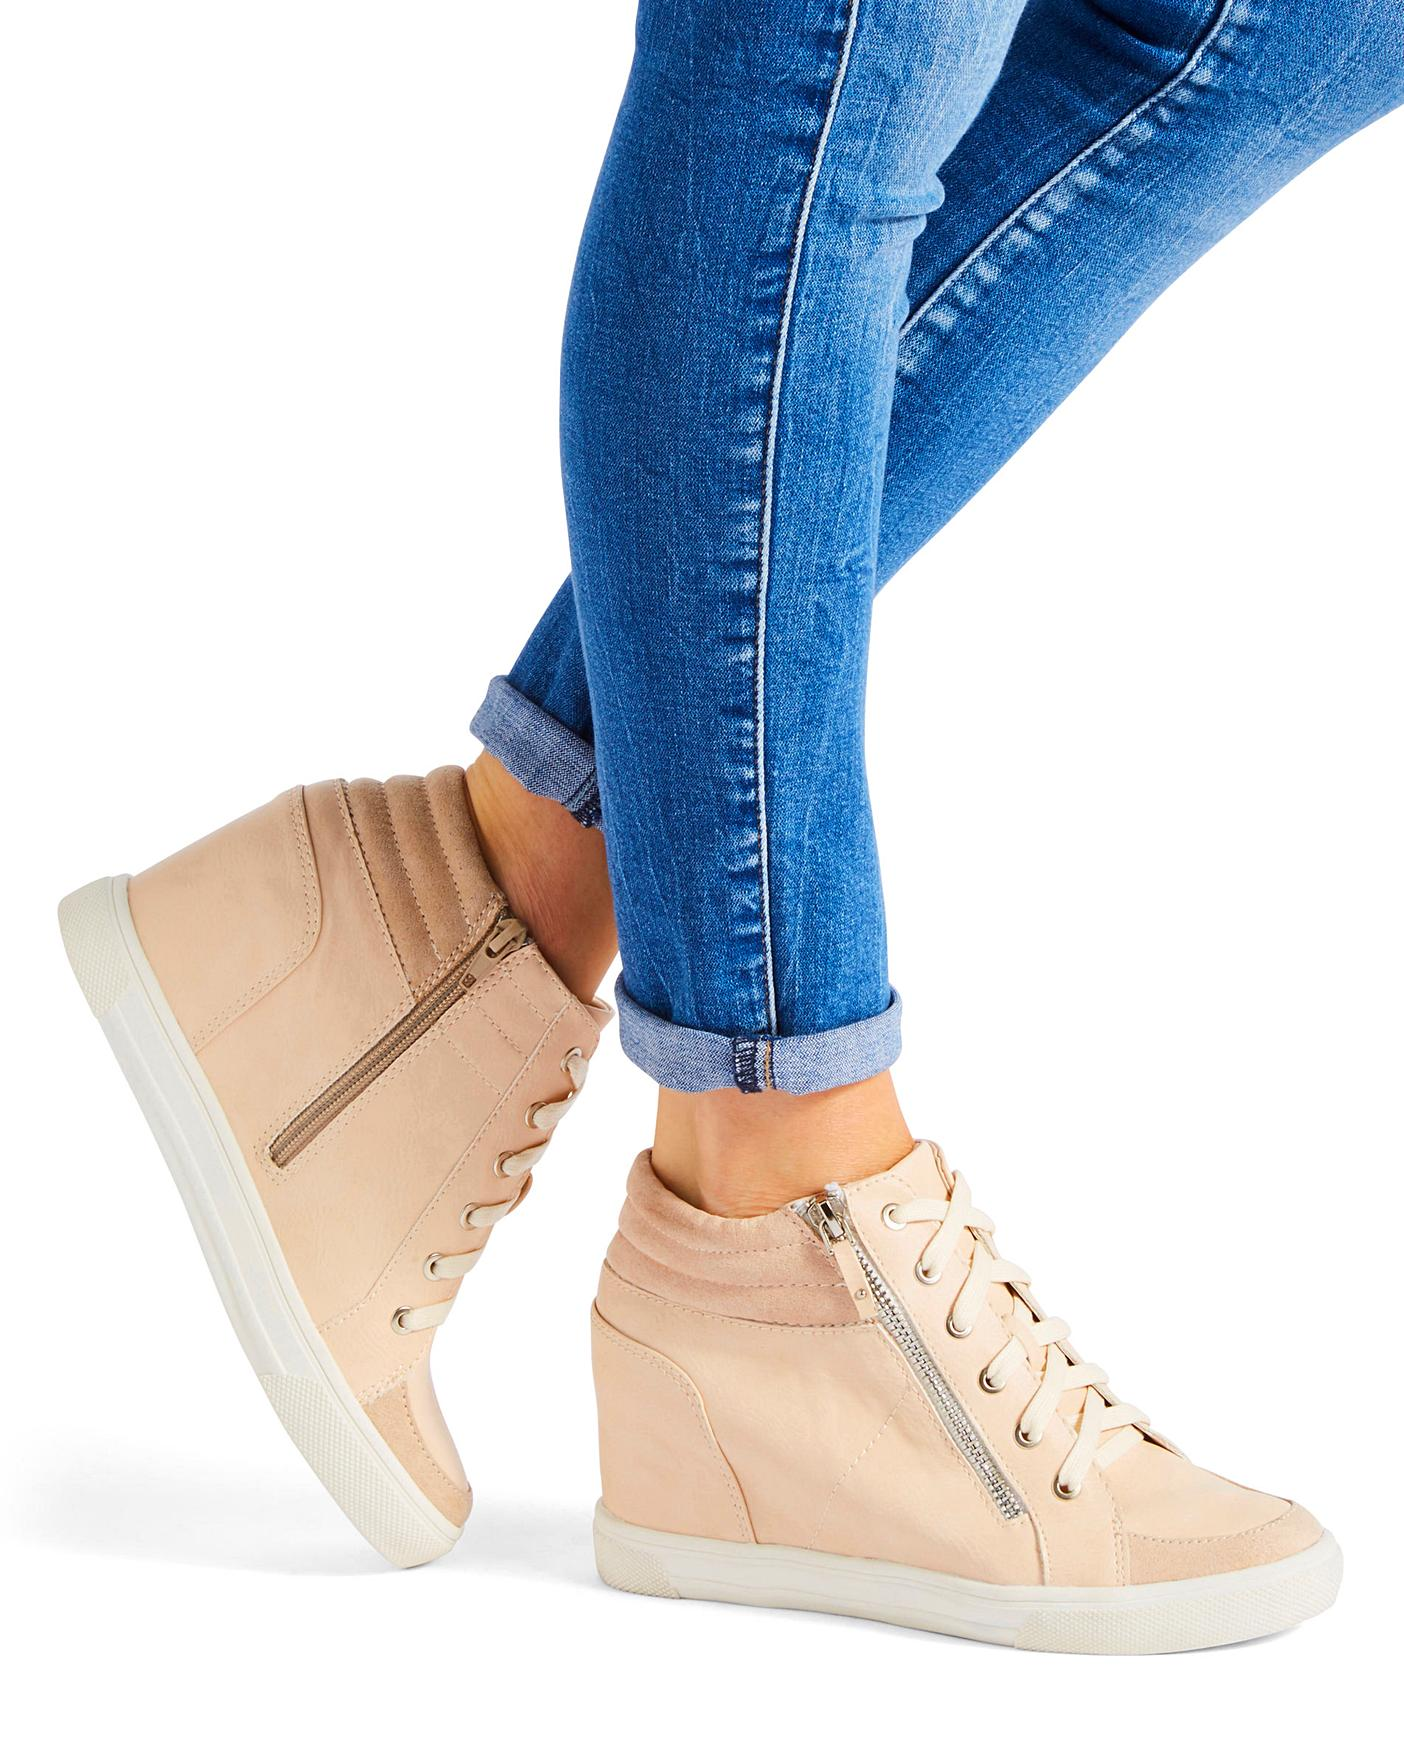 Leila Wedge Trainer Wide Fit | J D Williams